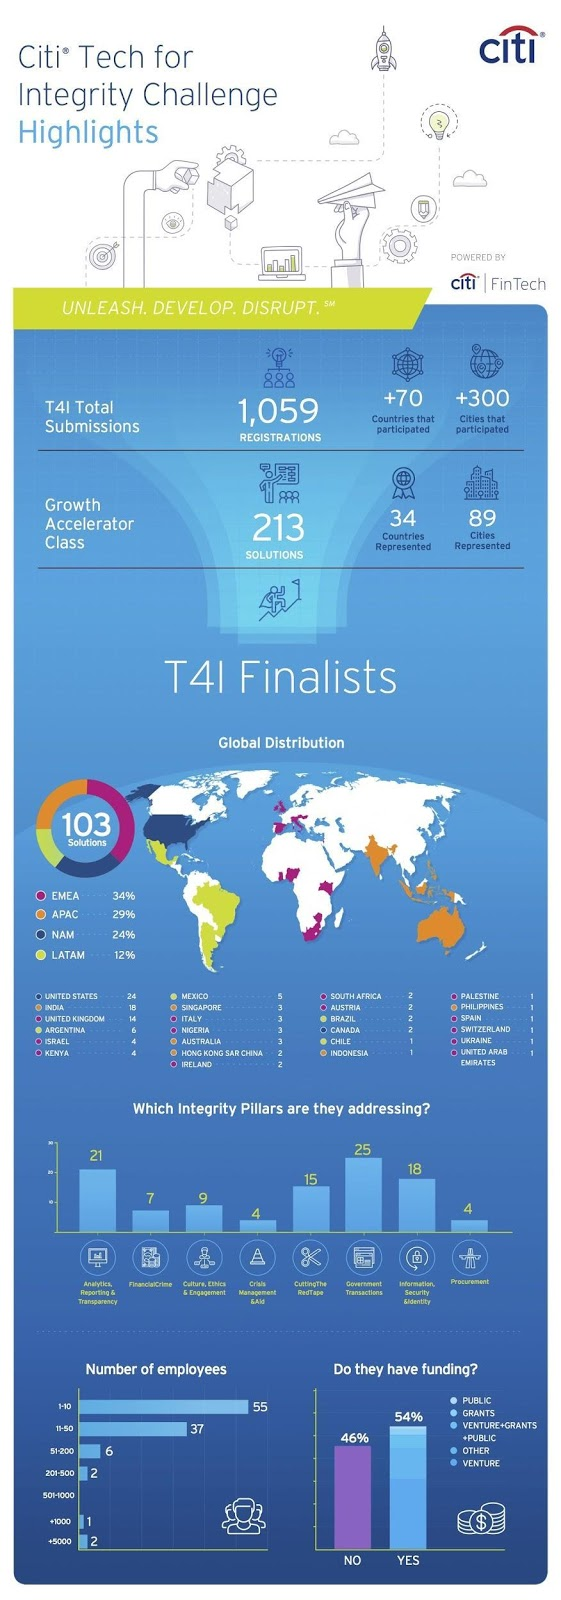 Citi Unveils 103 Finalists to Showcase Integrity Solutions to Citi & Ally Executives, Government Entities & Special Guests